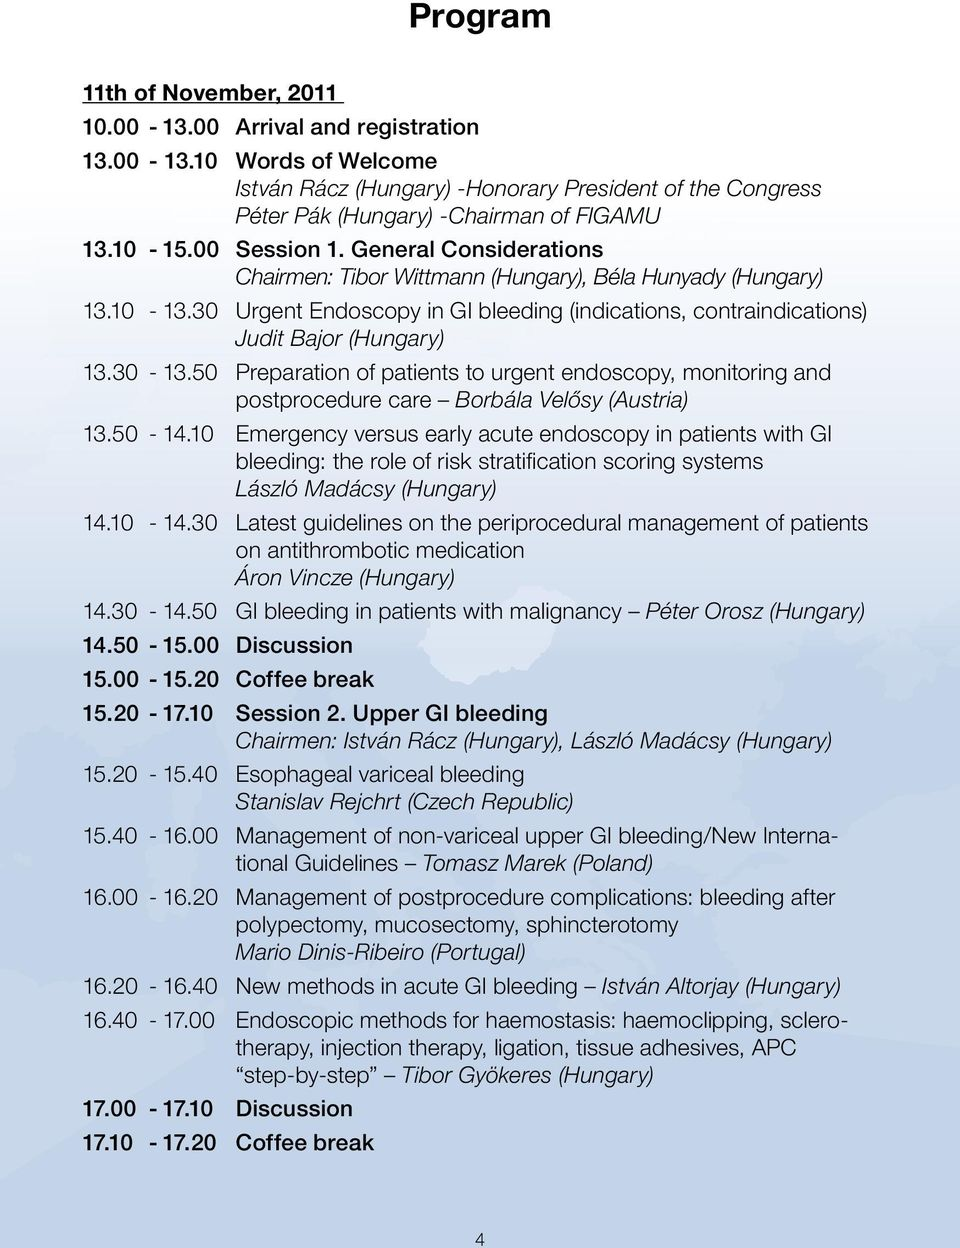 30 Urgent Endoscopy in GI bleeding (indications, contraindications) Judit Bajor (Hungary) 13.30-13.